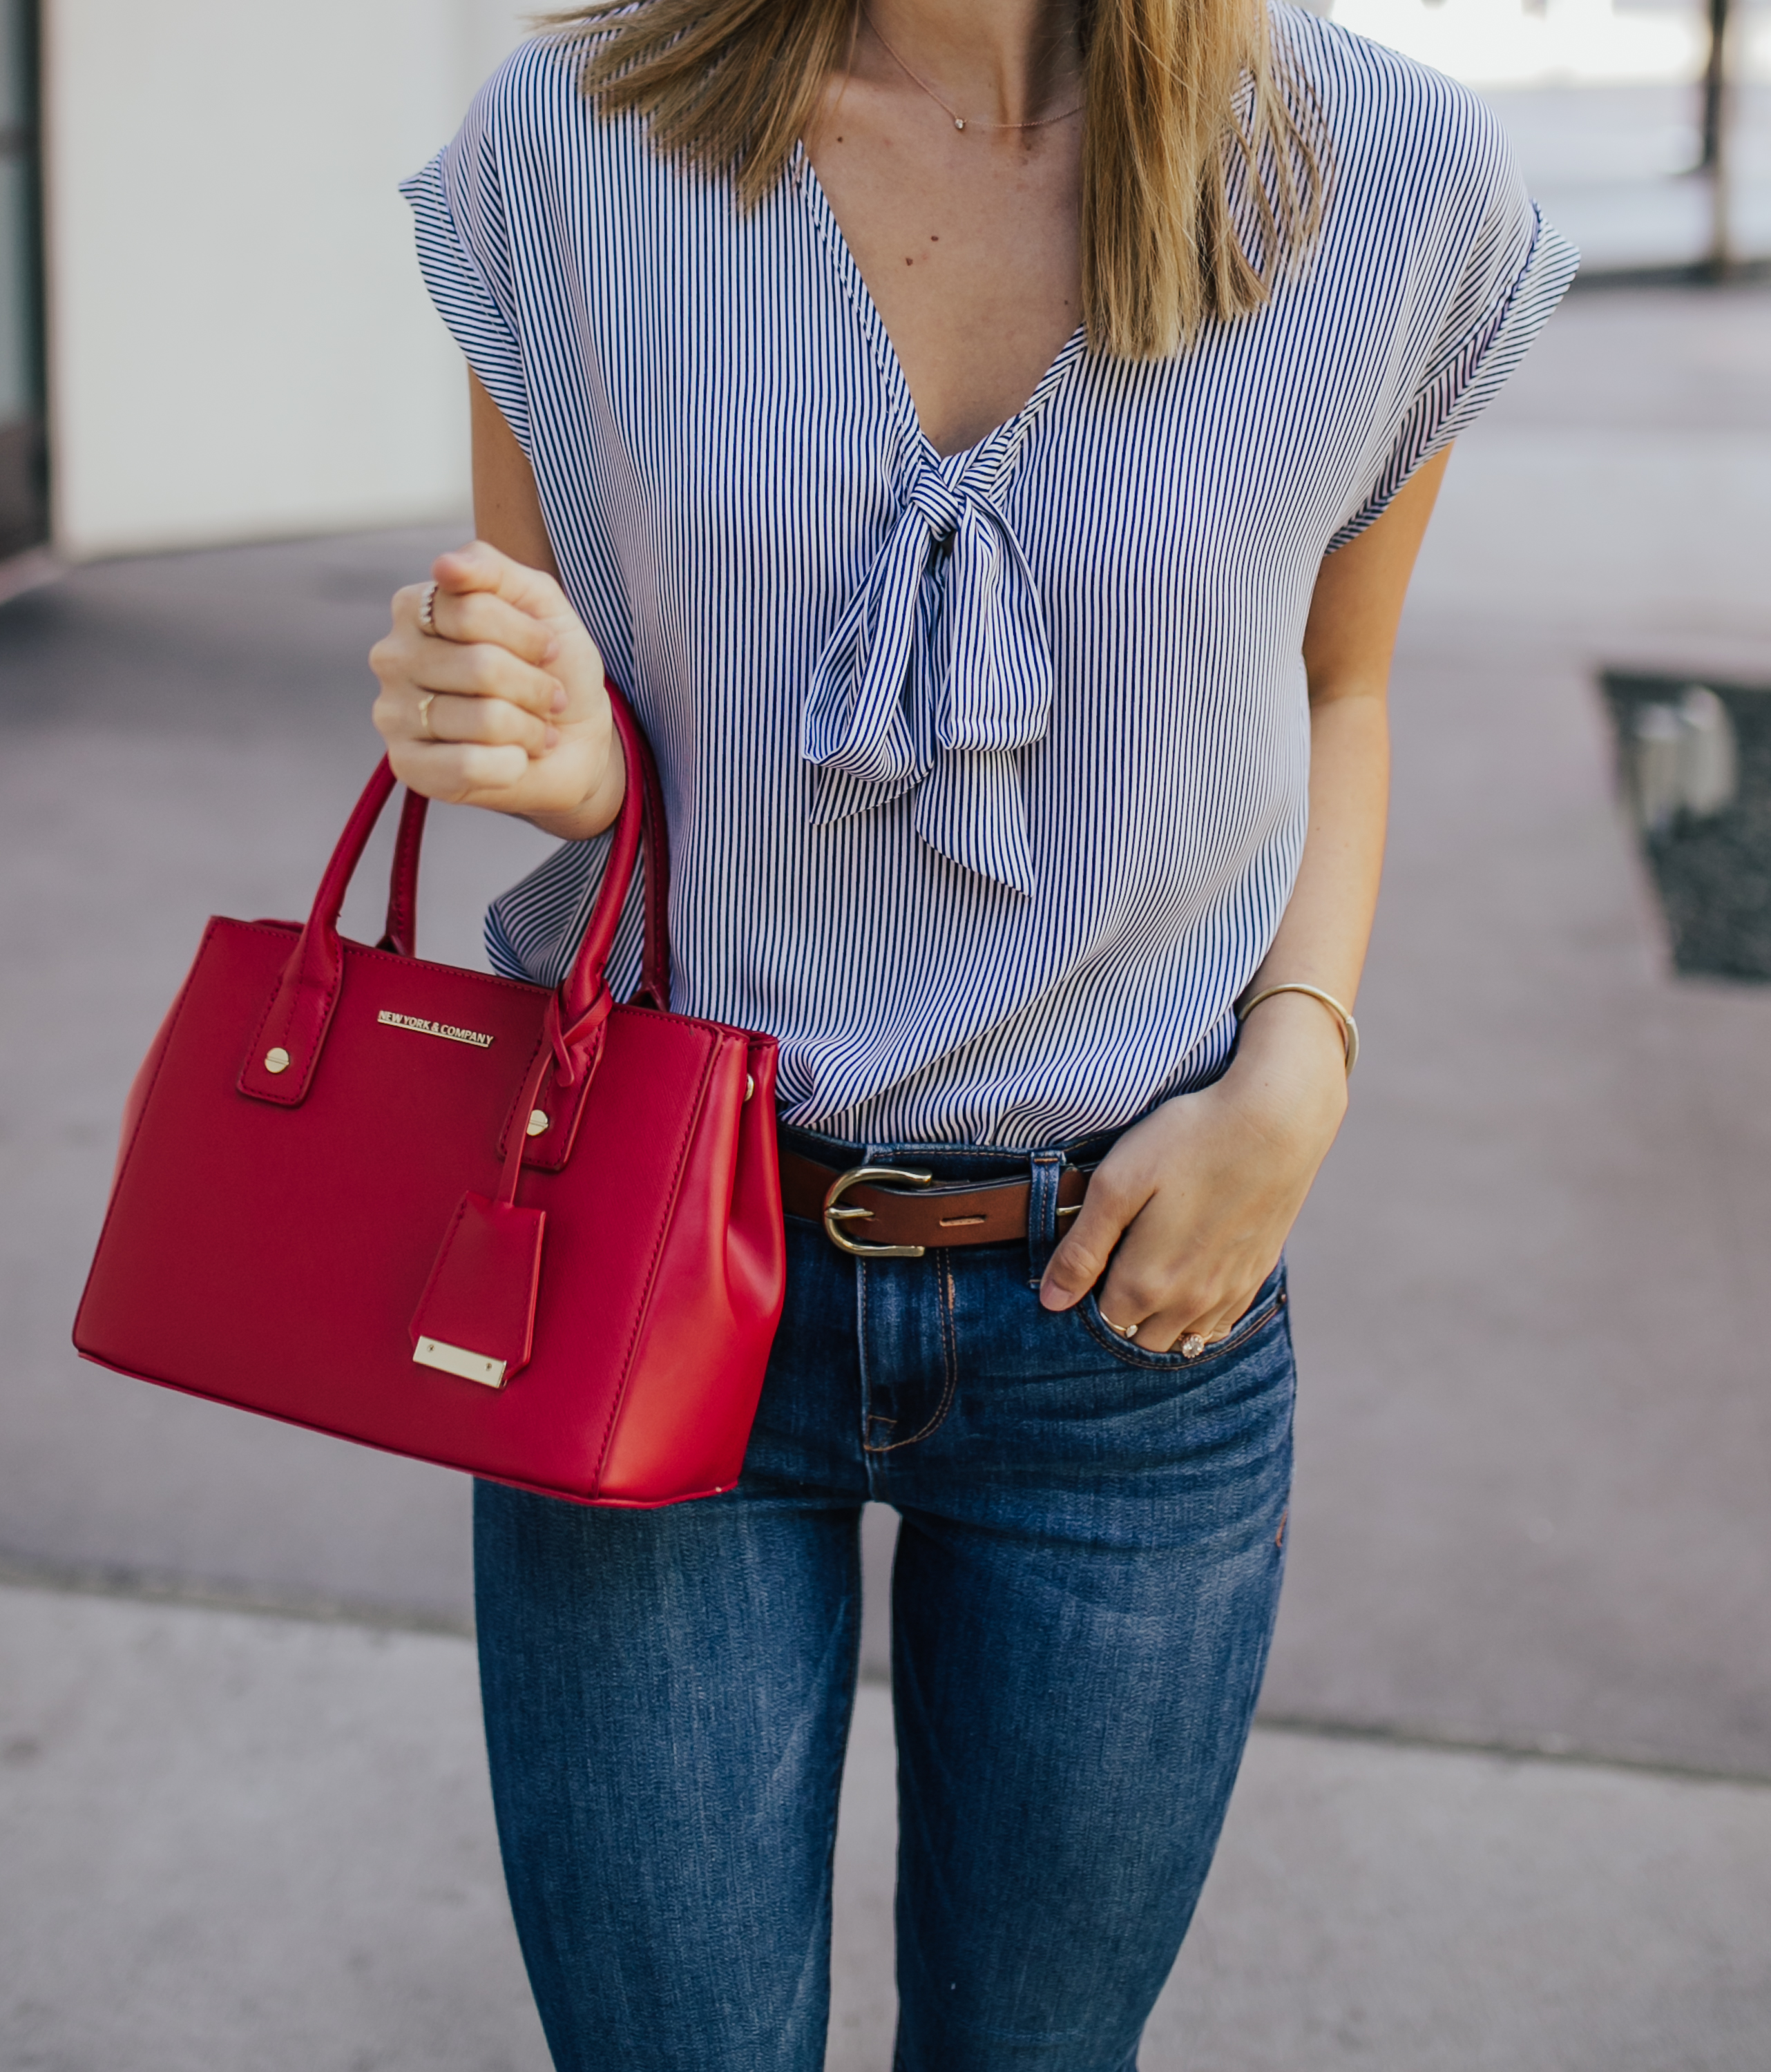 livvyland-blog-olivia-watson-new-york-and-company-striped-chiffon-top-red-handbag-austin-texas-fashion-blogger-2